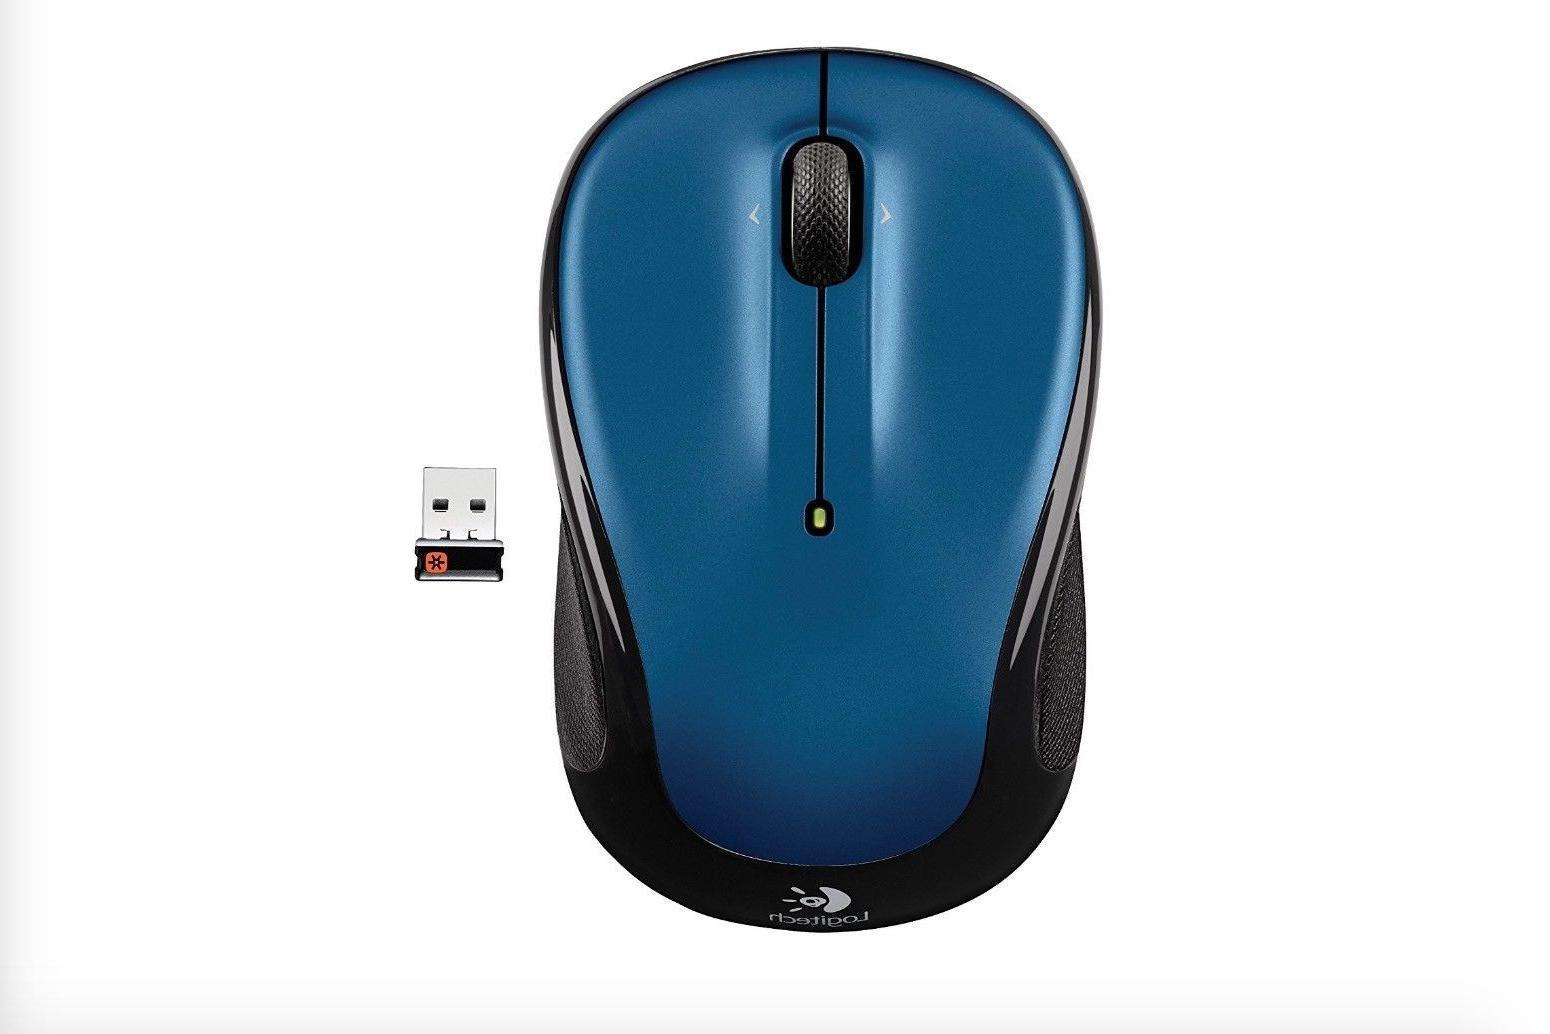 Logitech Mouse with